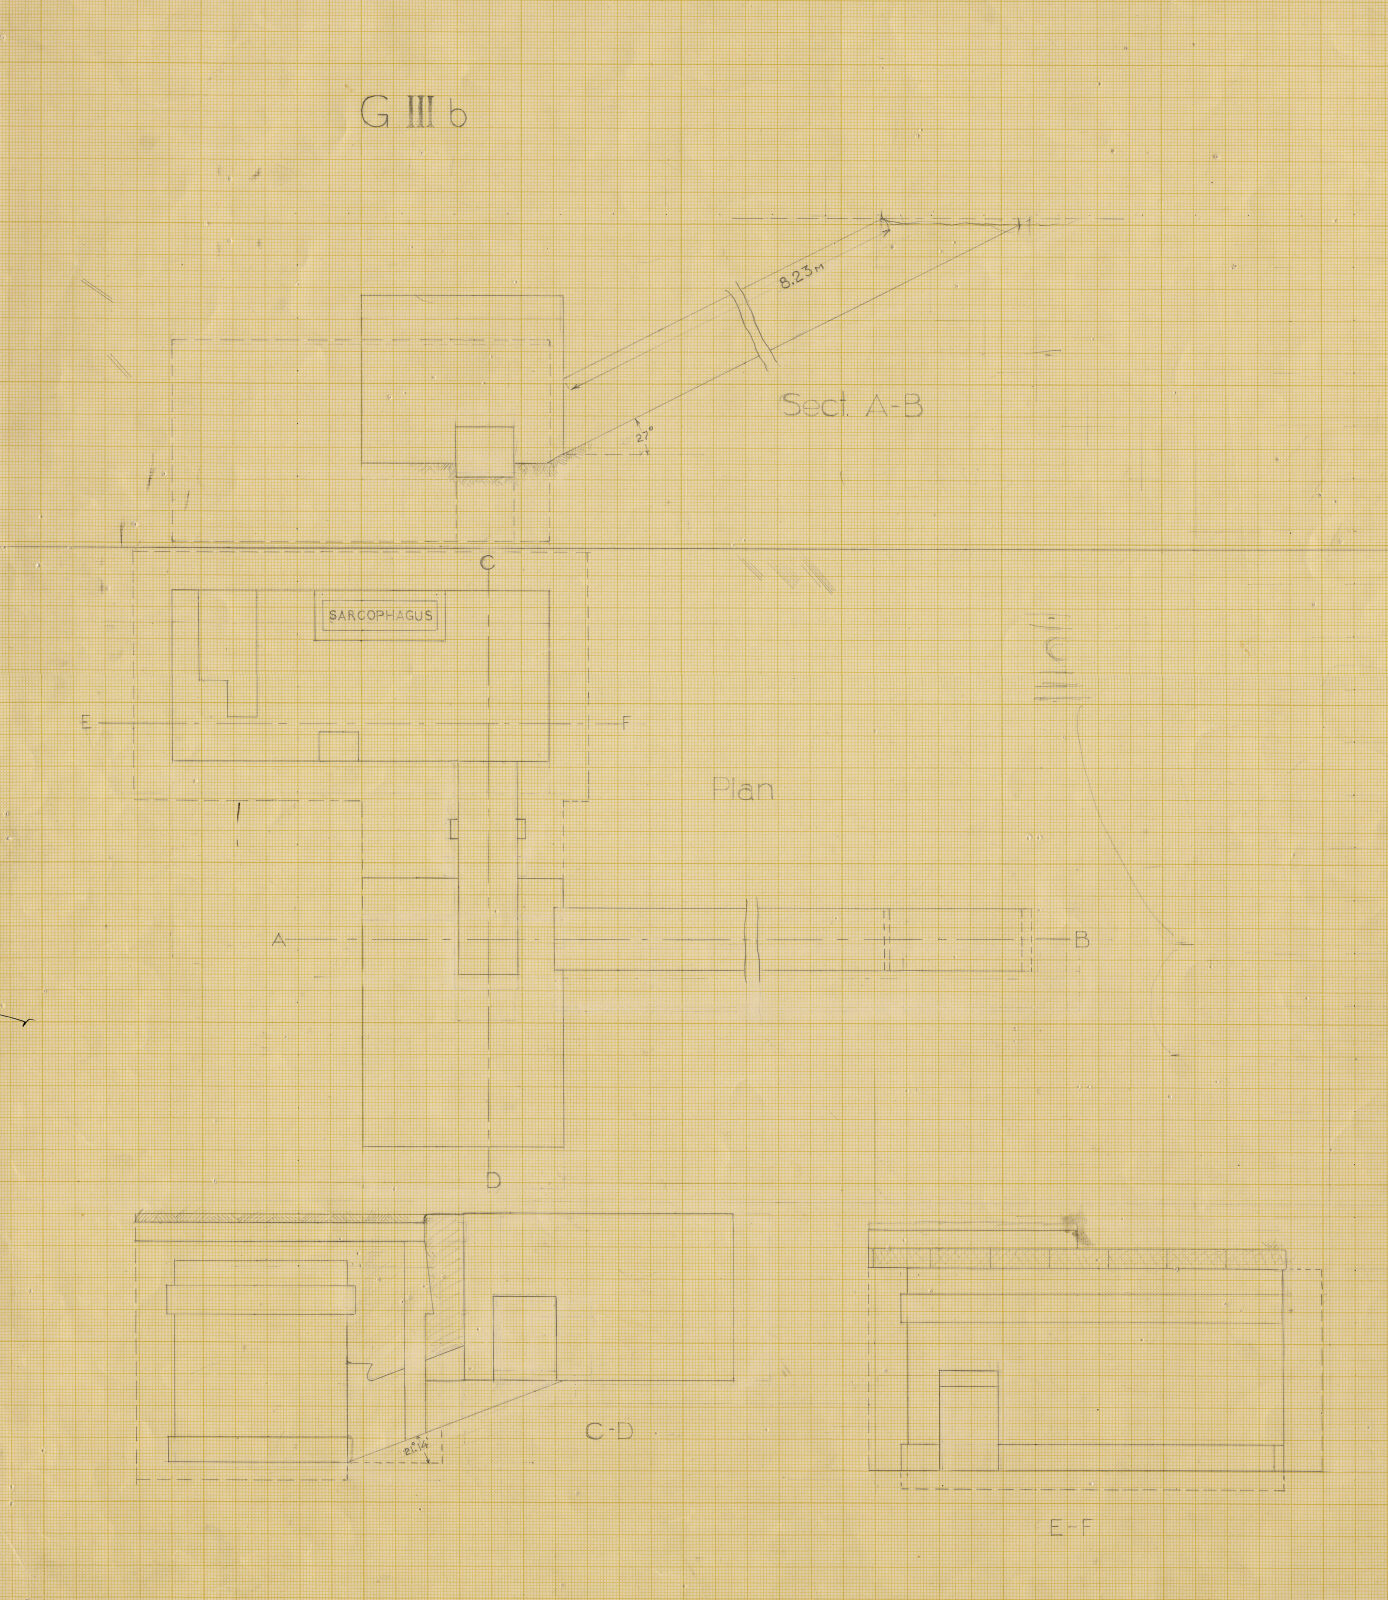 Maps and plans: G III-b burial chamber, Plan and sections